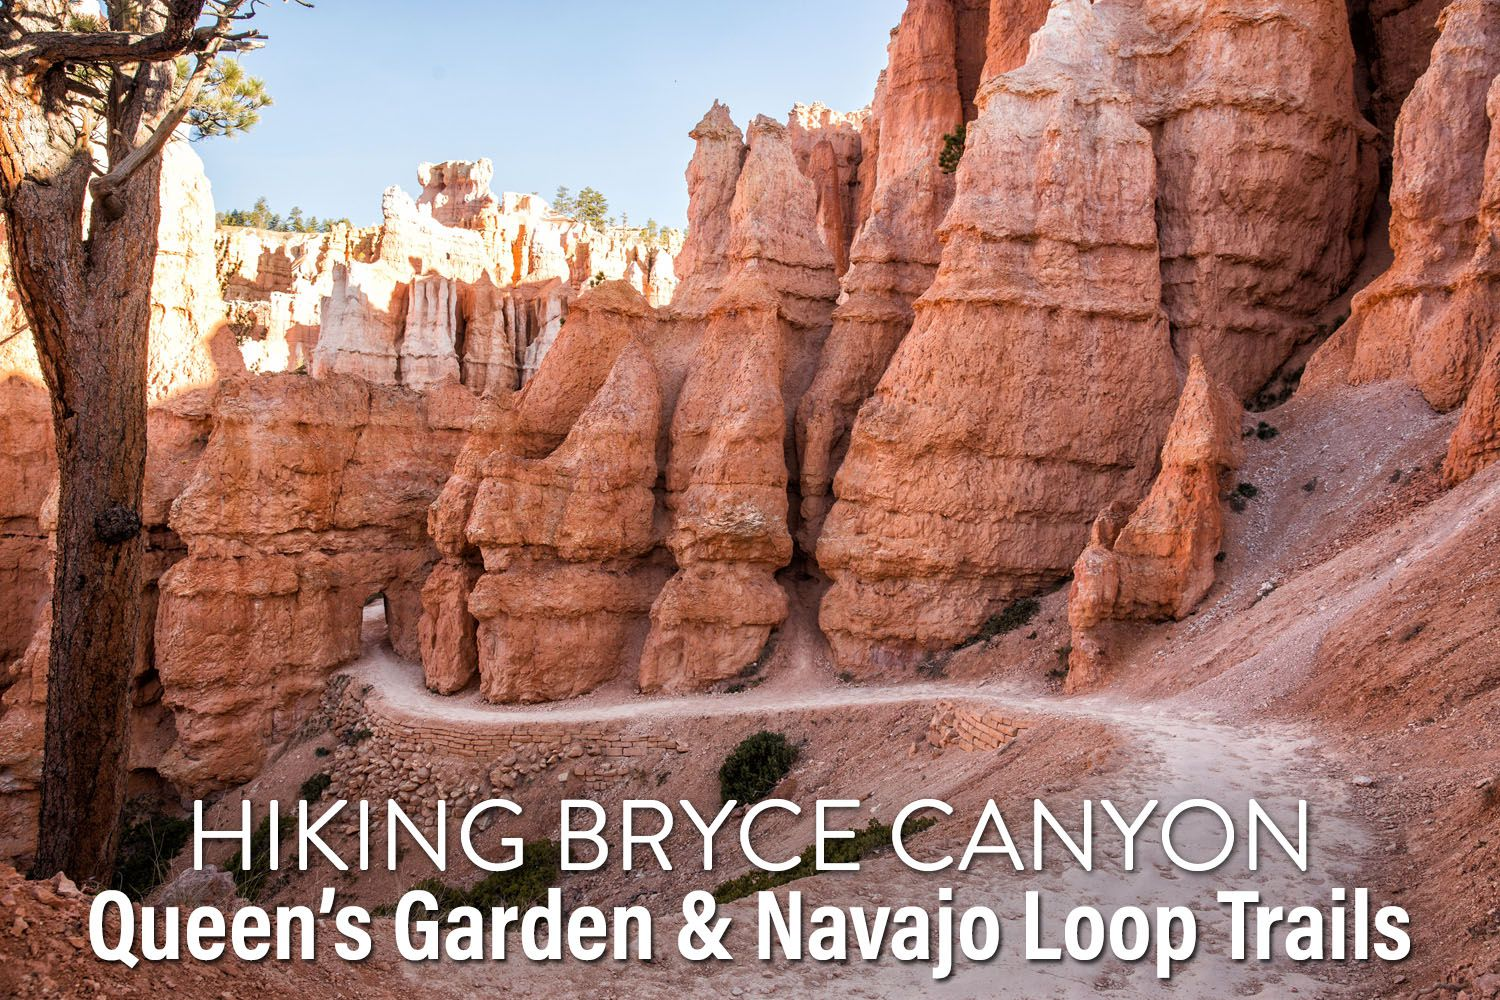 Hike Bryce Canyon